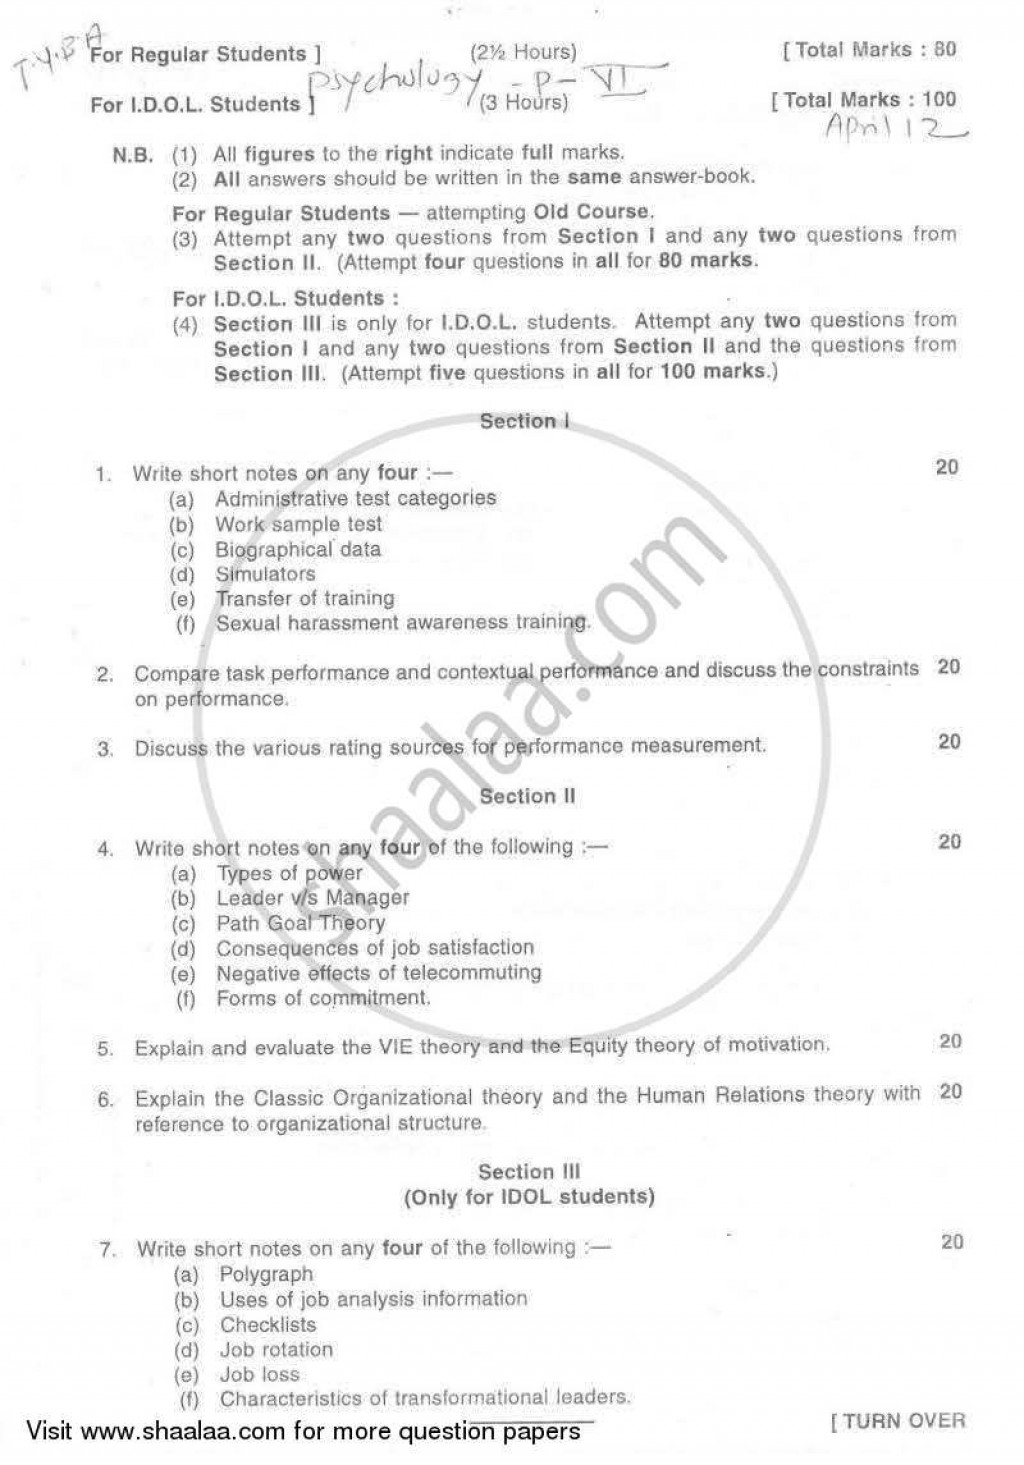 017 Psychologyearch Paper On Dreams University Of Mumbai Bachelor Industrial Organizational T Y Yearly Pattern Semester Tyba 2011 29a03925dfc524f2aa4cb10e4d3da996a Singular Psychology Research Articles News Large